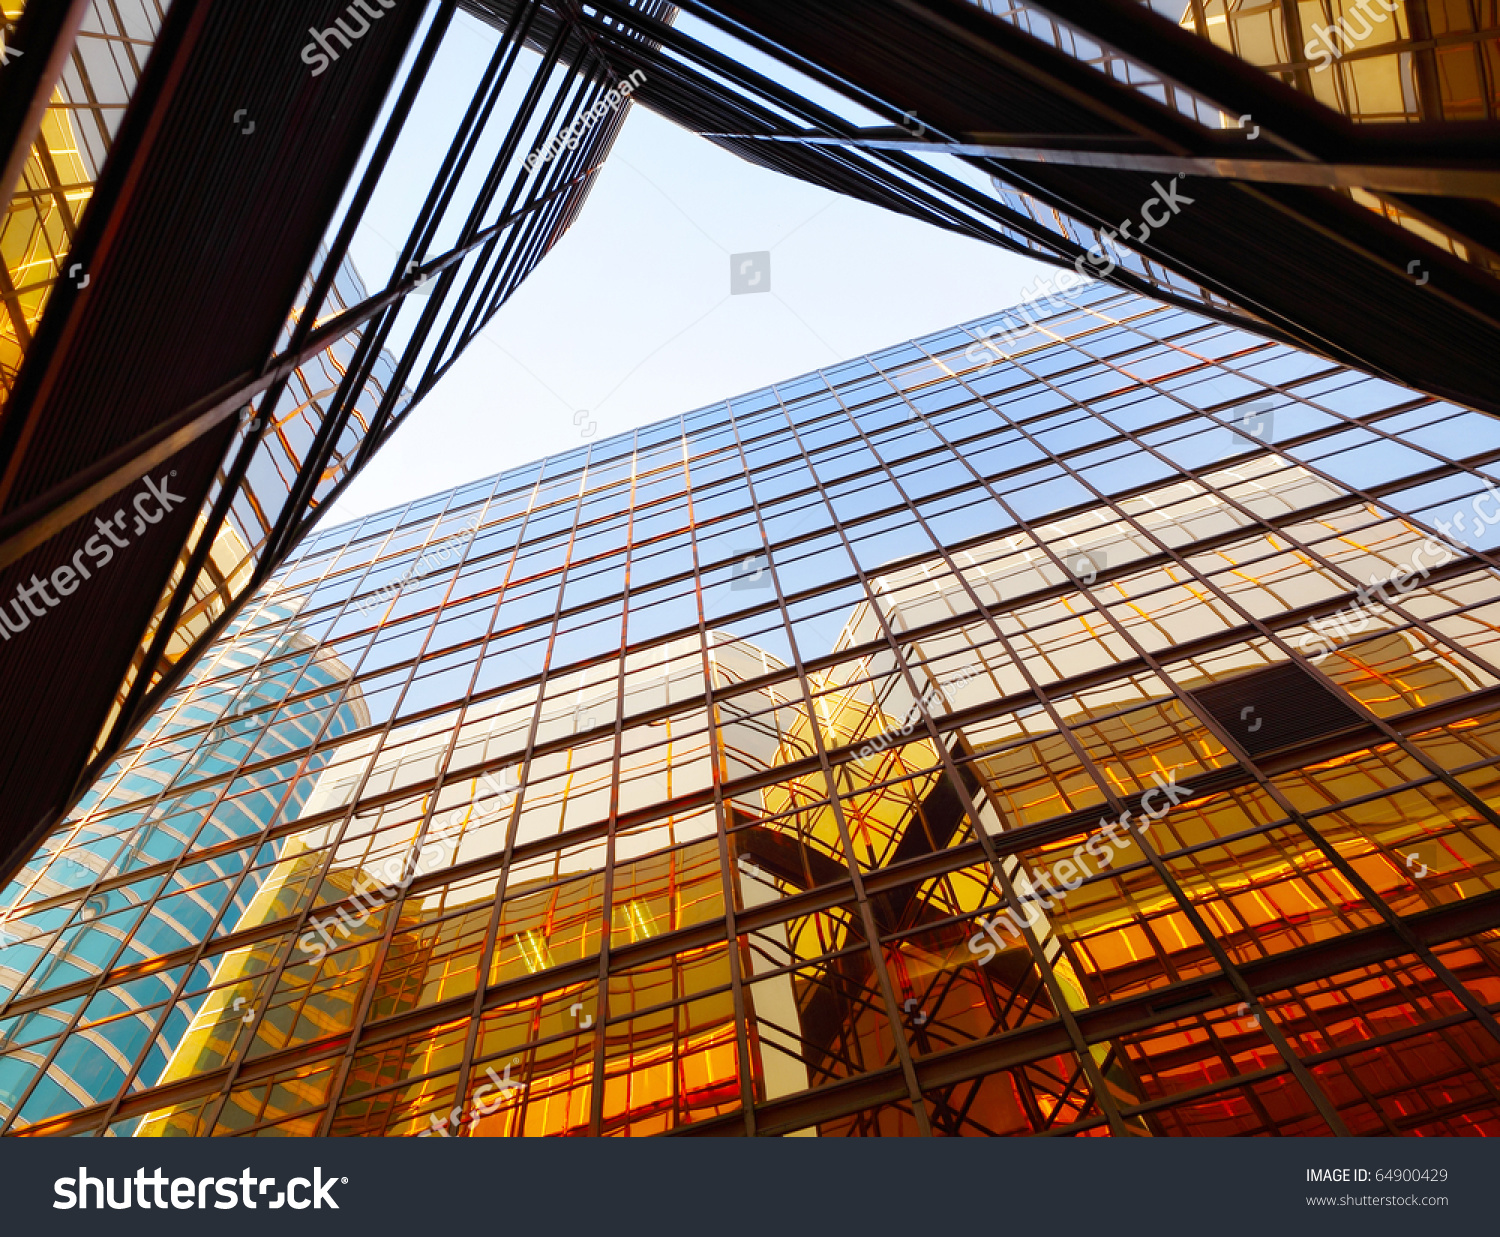 Business building exterior stock photo 64900429 shutterstock for Design your own commercial building